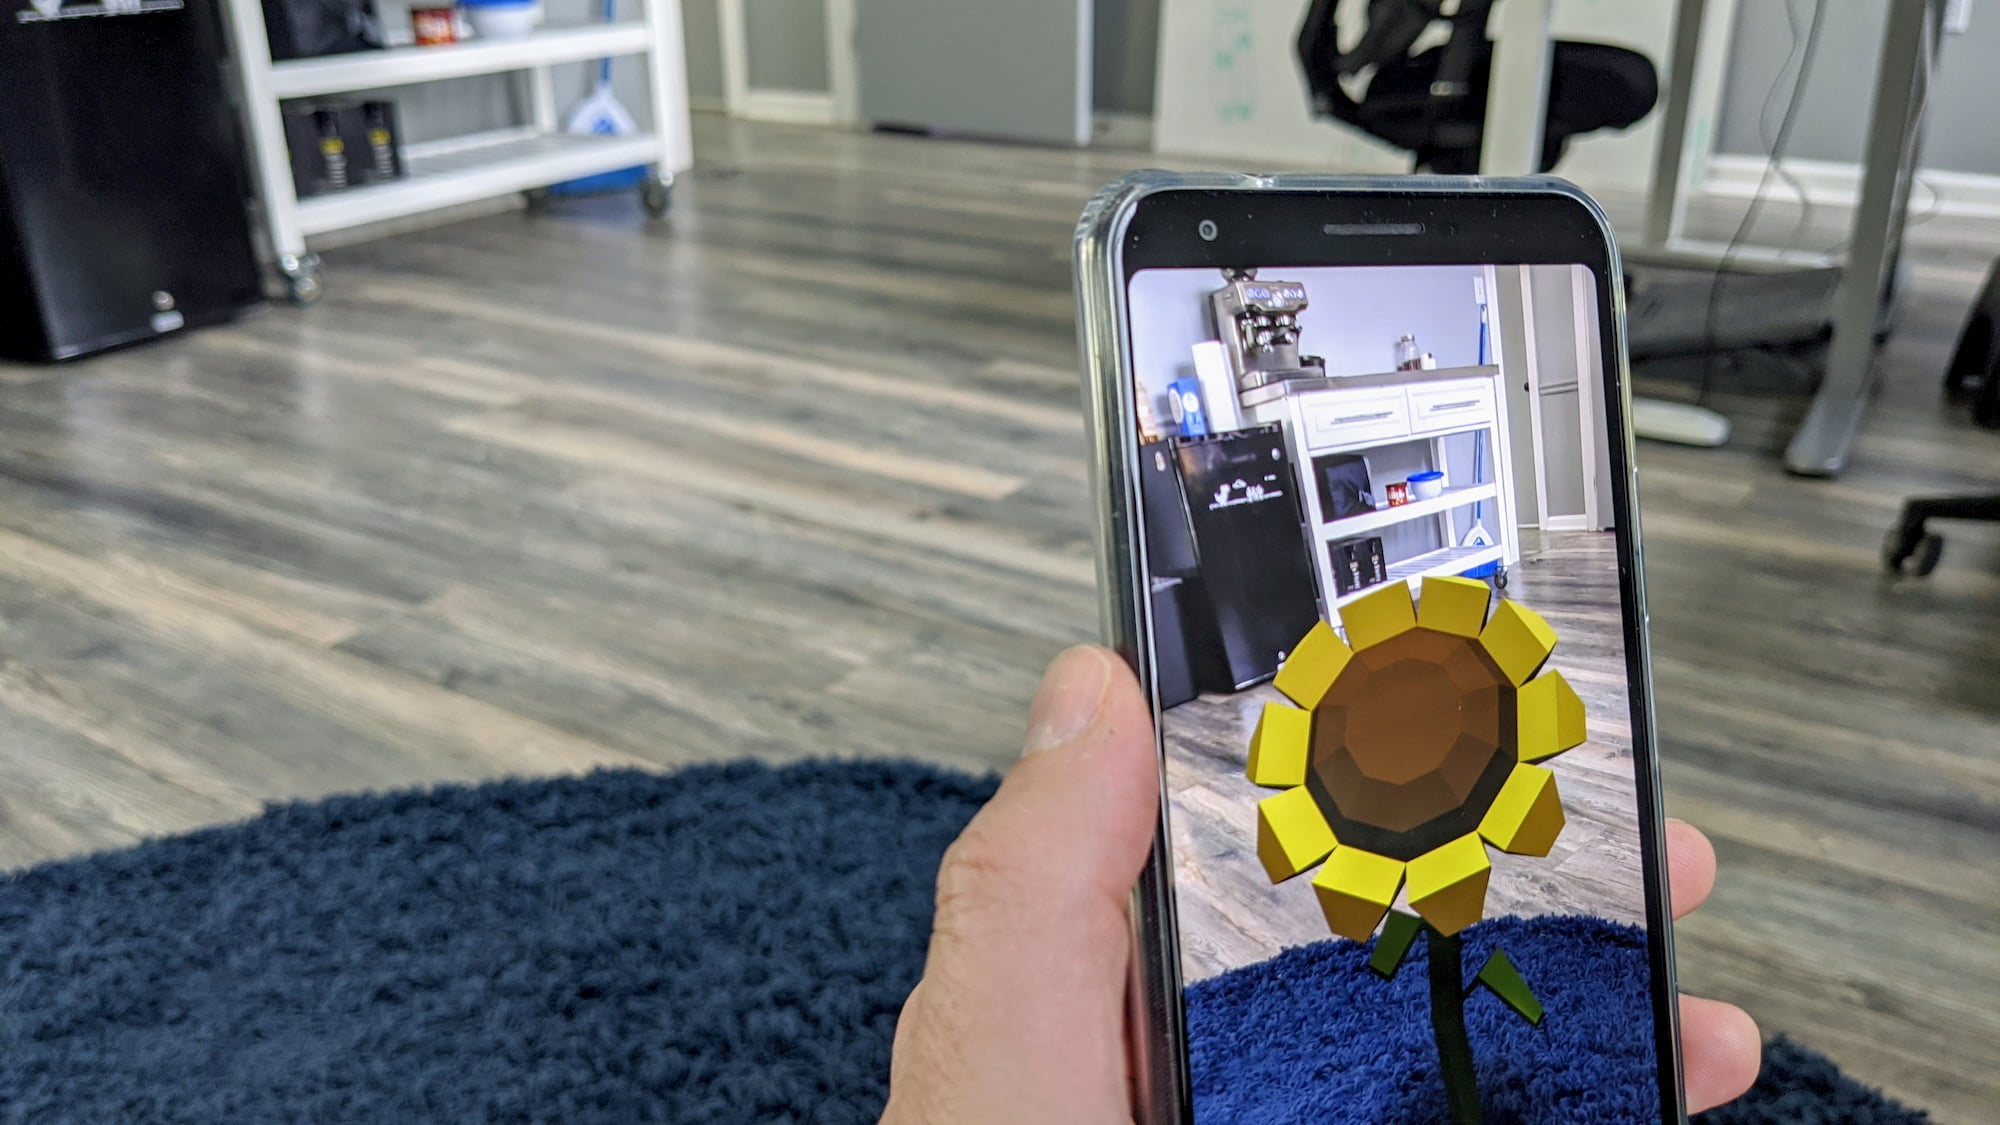 Chrome 81 brings AR to the browser with WebXR and it's blowing my mind